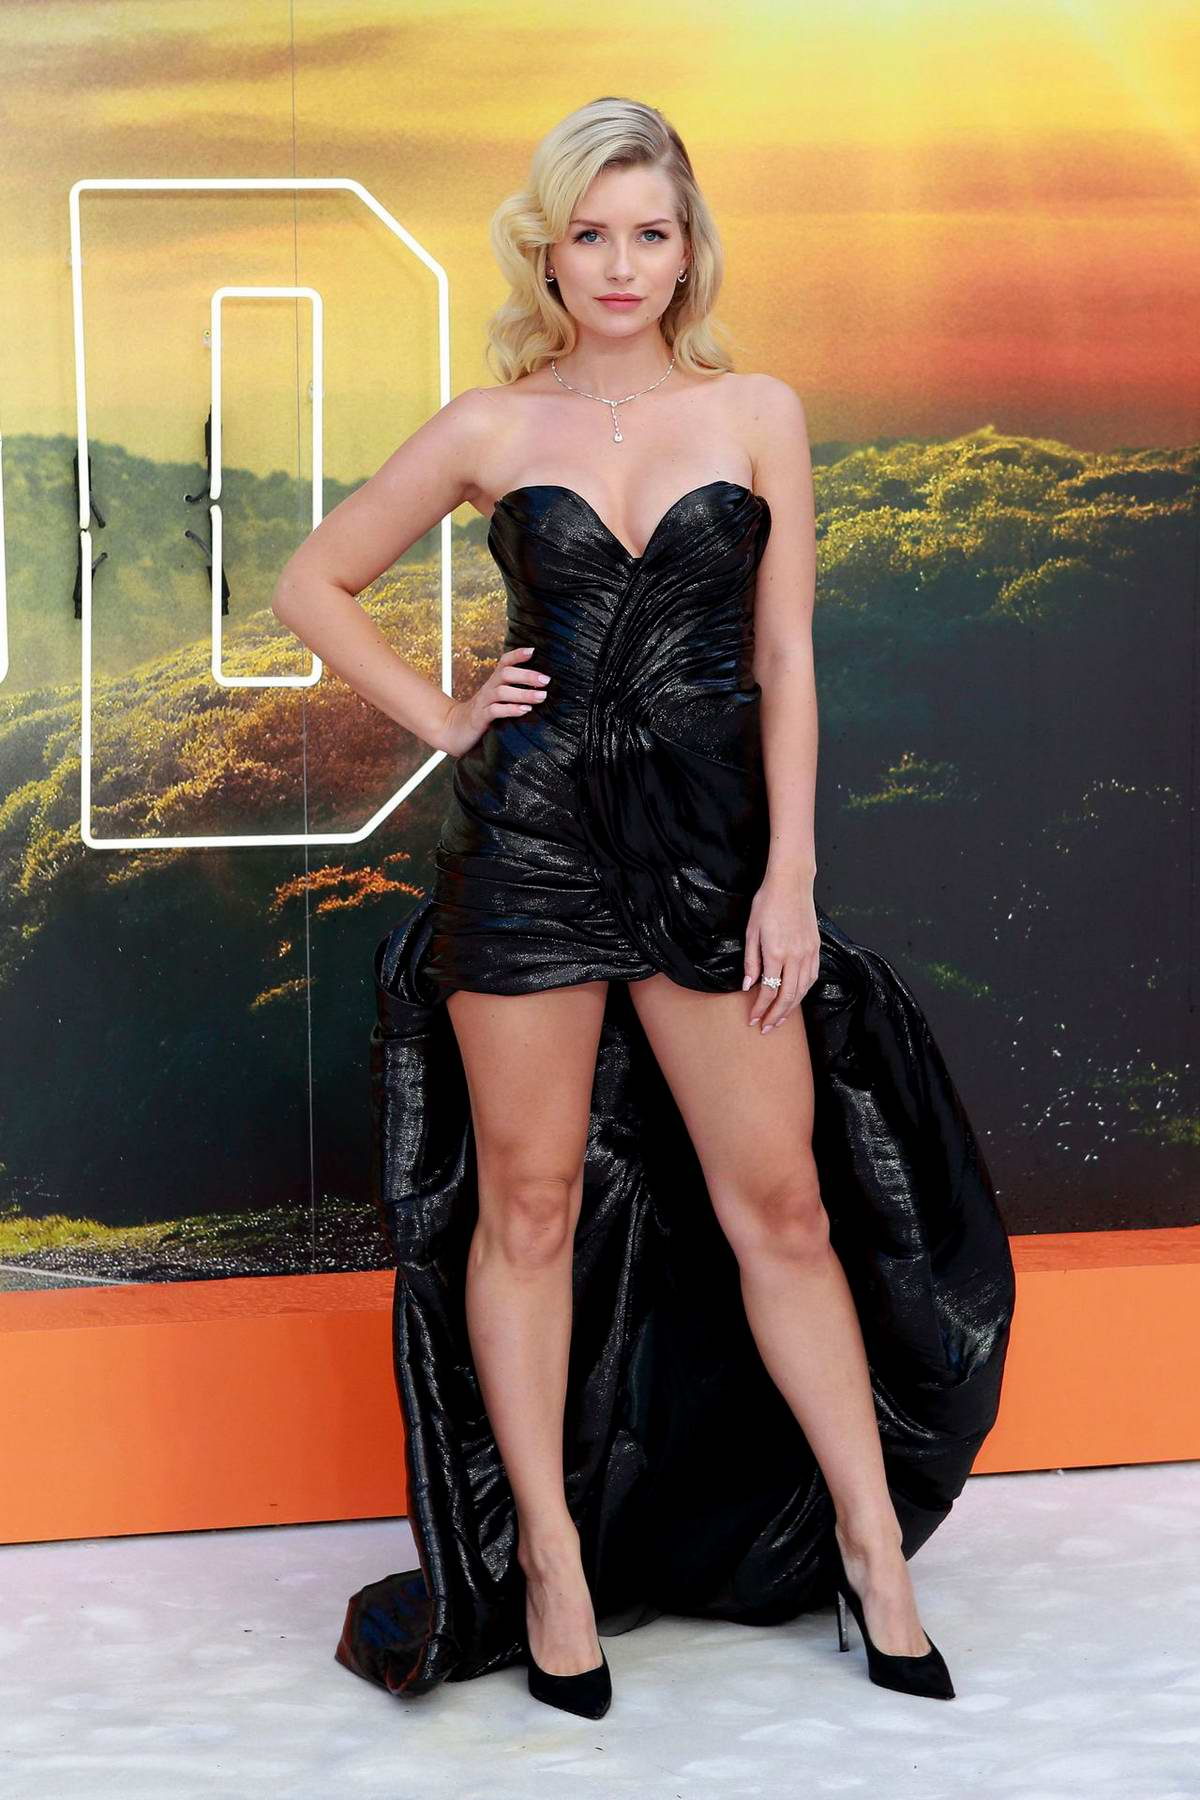 Lottie Moss attends the UK Premiere of 'Once Upon a Time in Hollywood' in London, UK